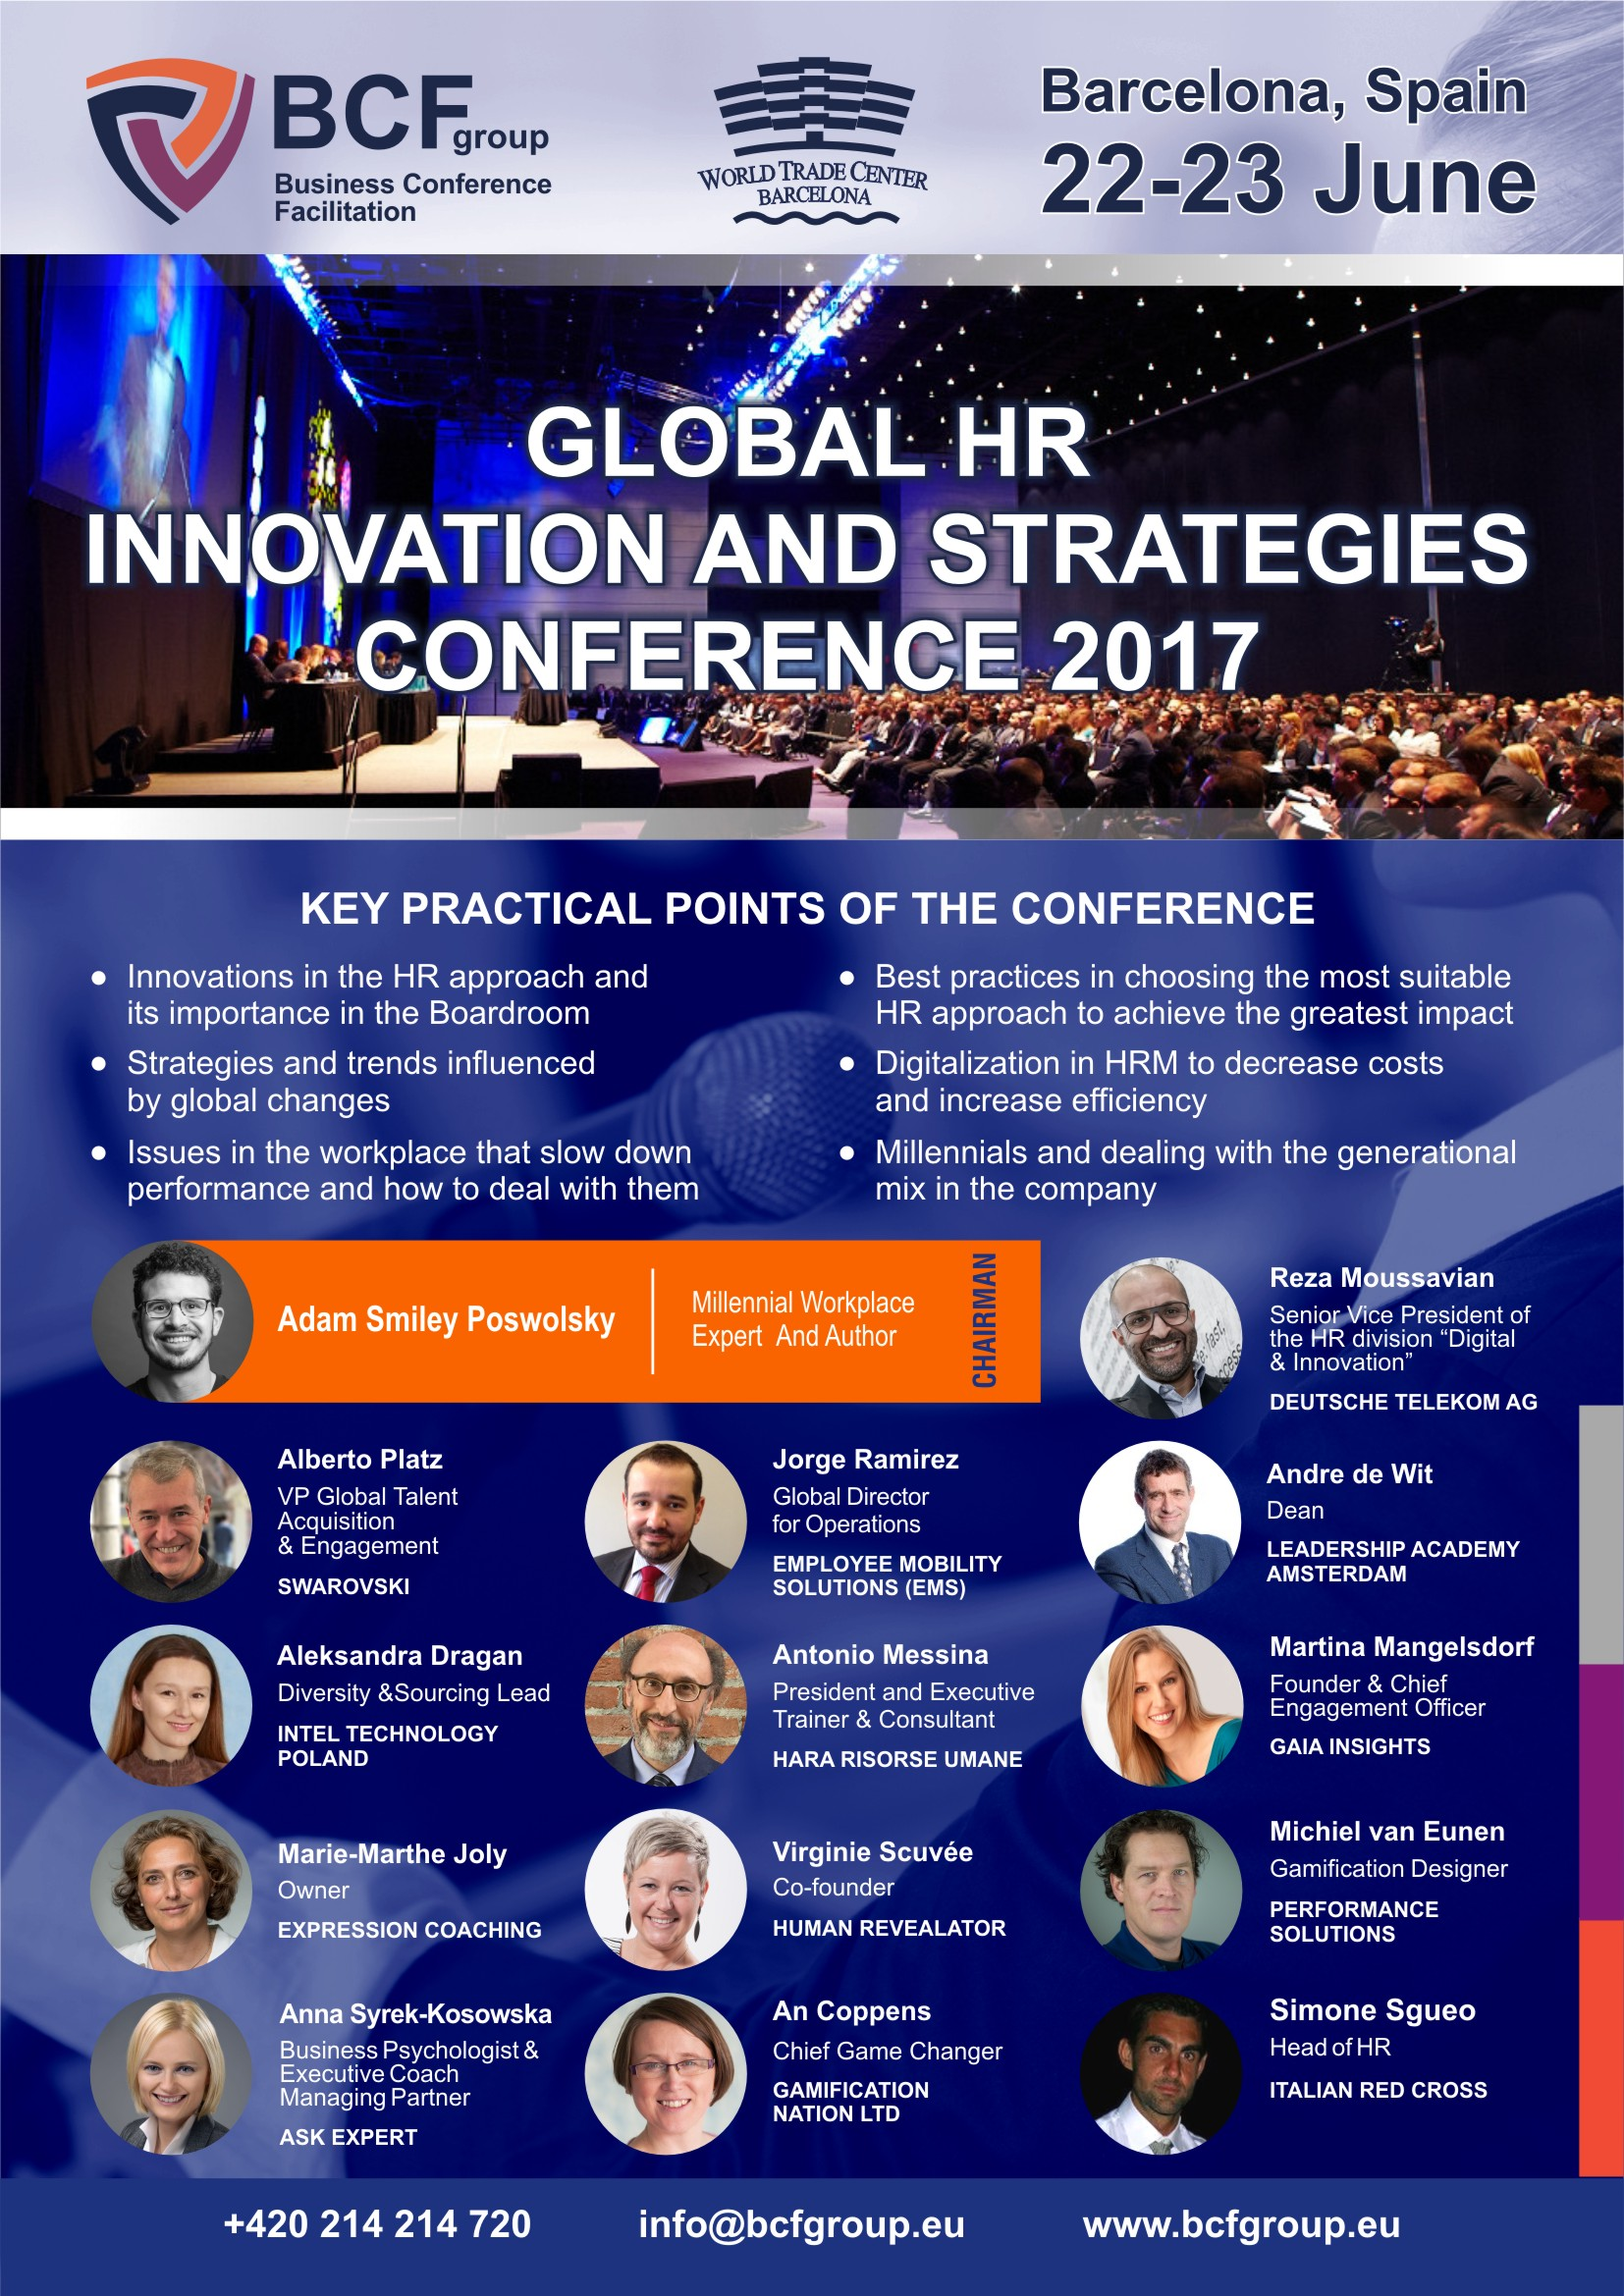 Global HR Innovation and Strategies Conference 2017